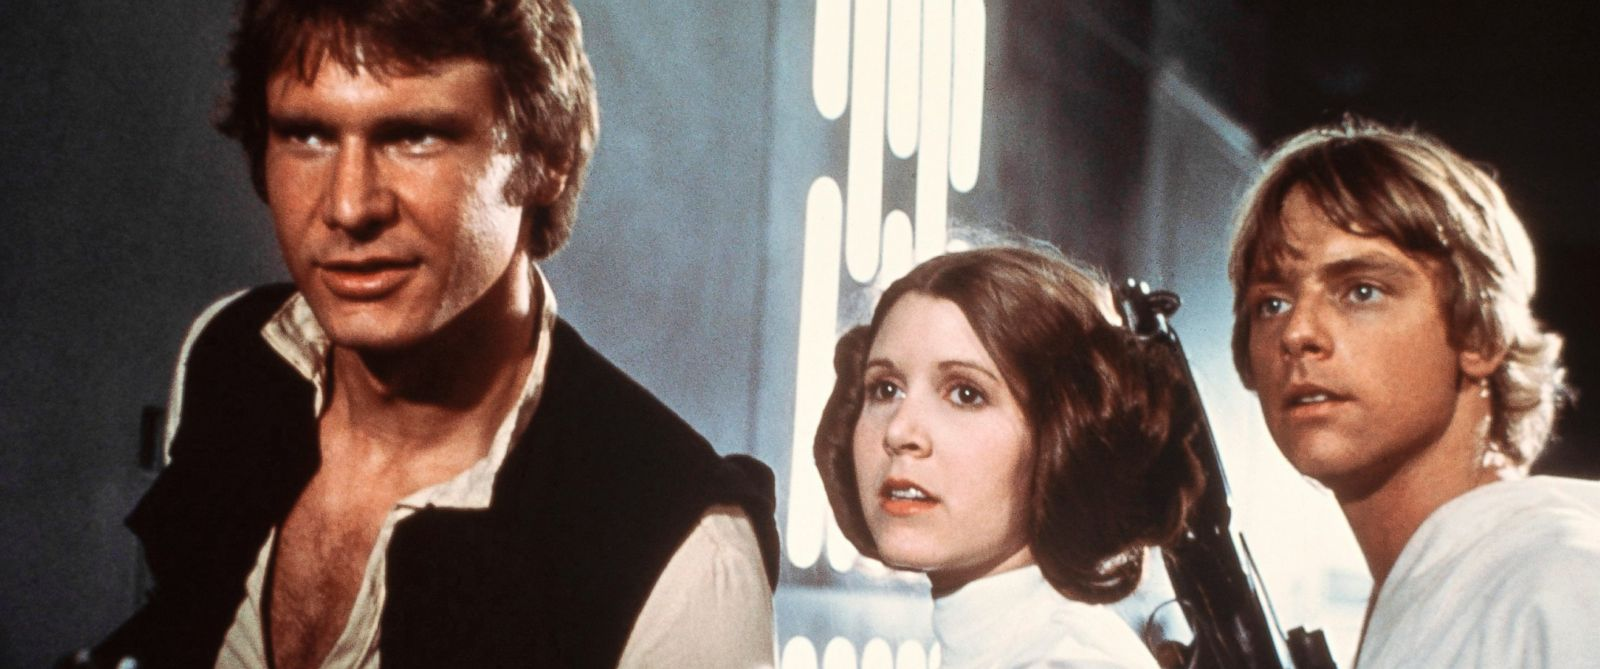 "PHOTO: Harrison Ford, as Han Solo, Carrie Fisher, as Princess Leia, and Mark Hamill, as Luke Skywalker in a scene from the 1977 movie, ""Star Wars IV: A New Hope."""